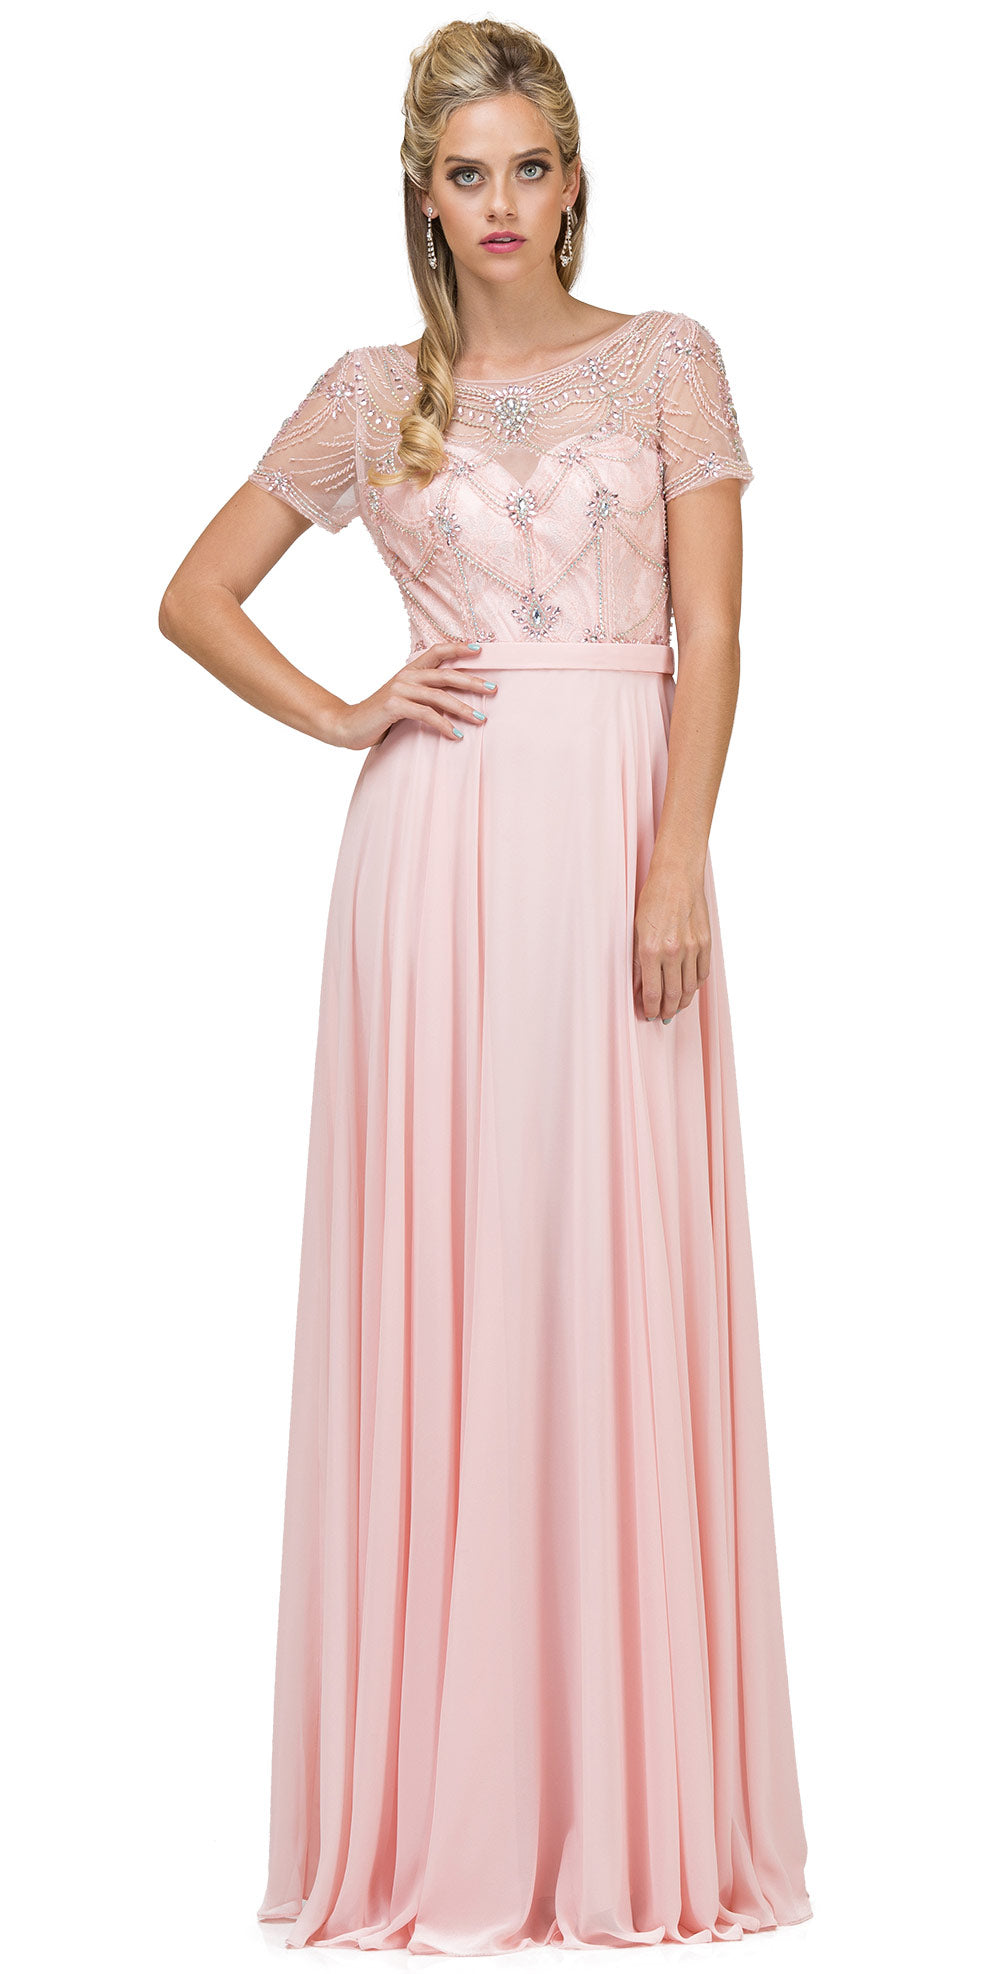 Image of Boat Neck Half Sleeves Beaded Mesh Top Long Formal Mob Dress in Blush